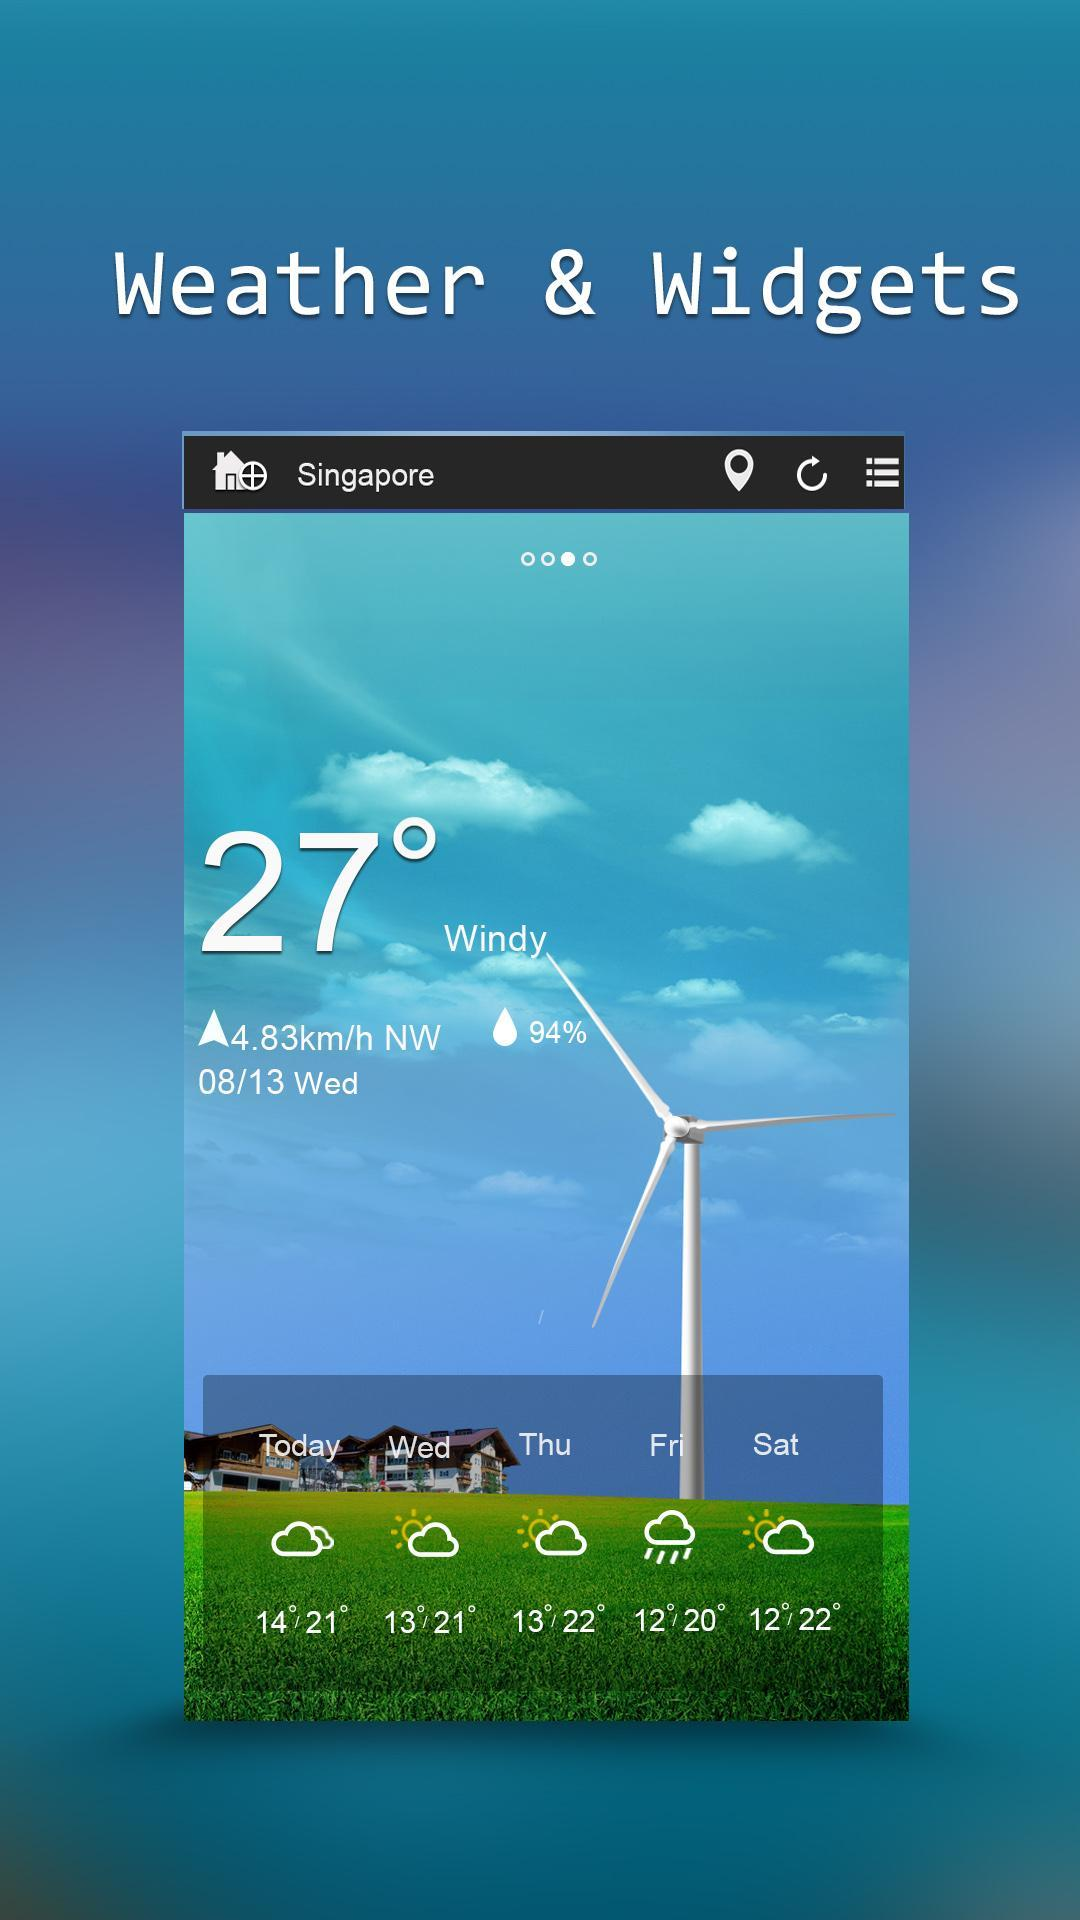 Weather & Widgets for Android - APK Download